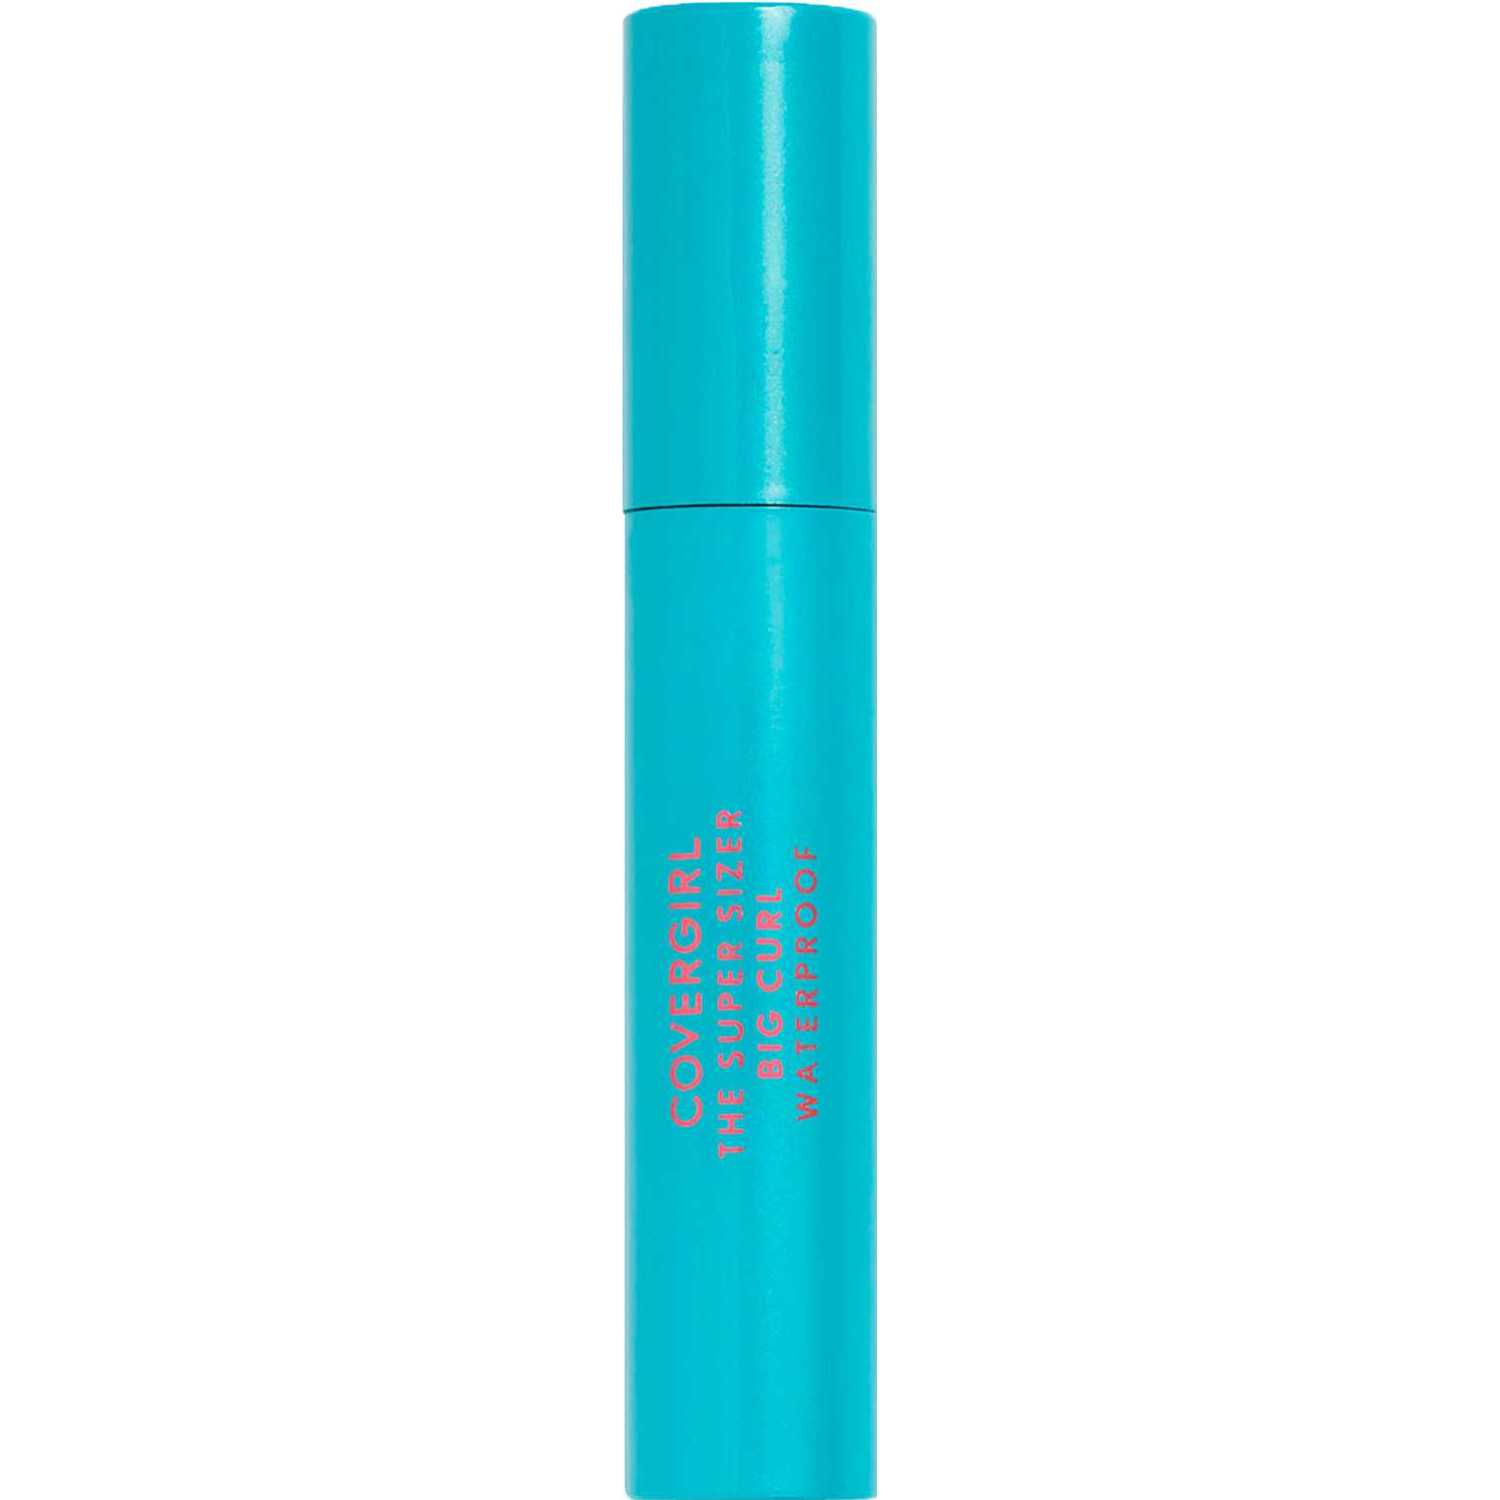 Covergirl Mascara The Super Sizer Big Curl Wp Very Black Máscara